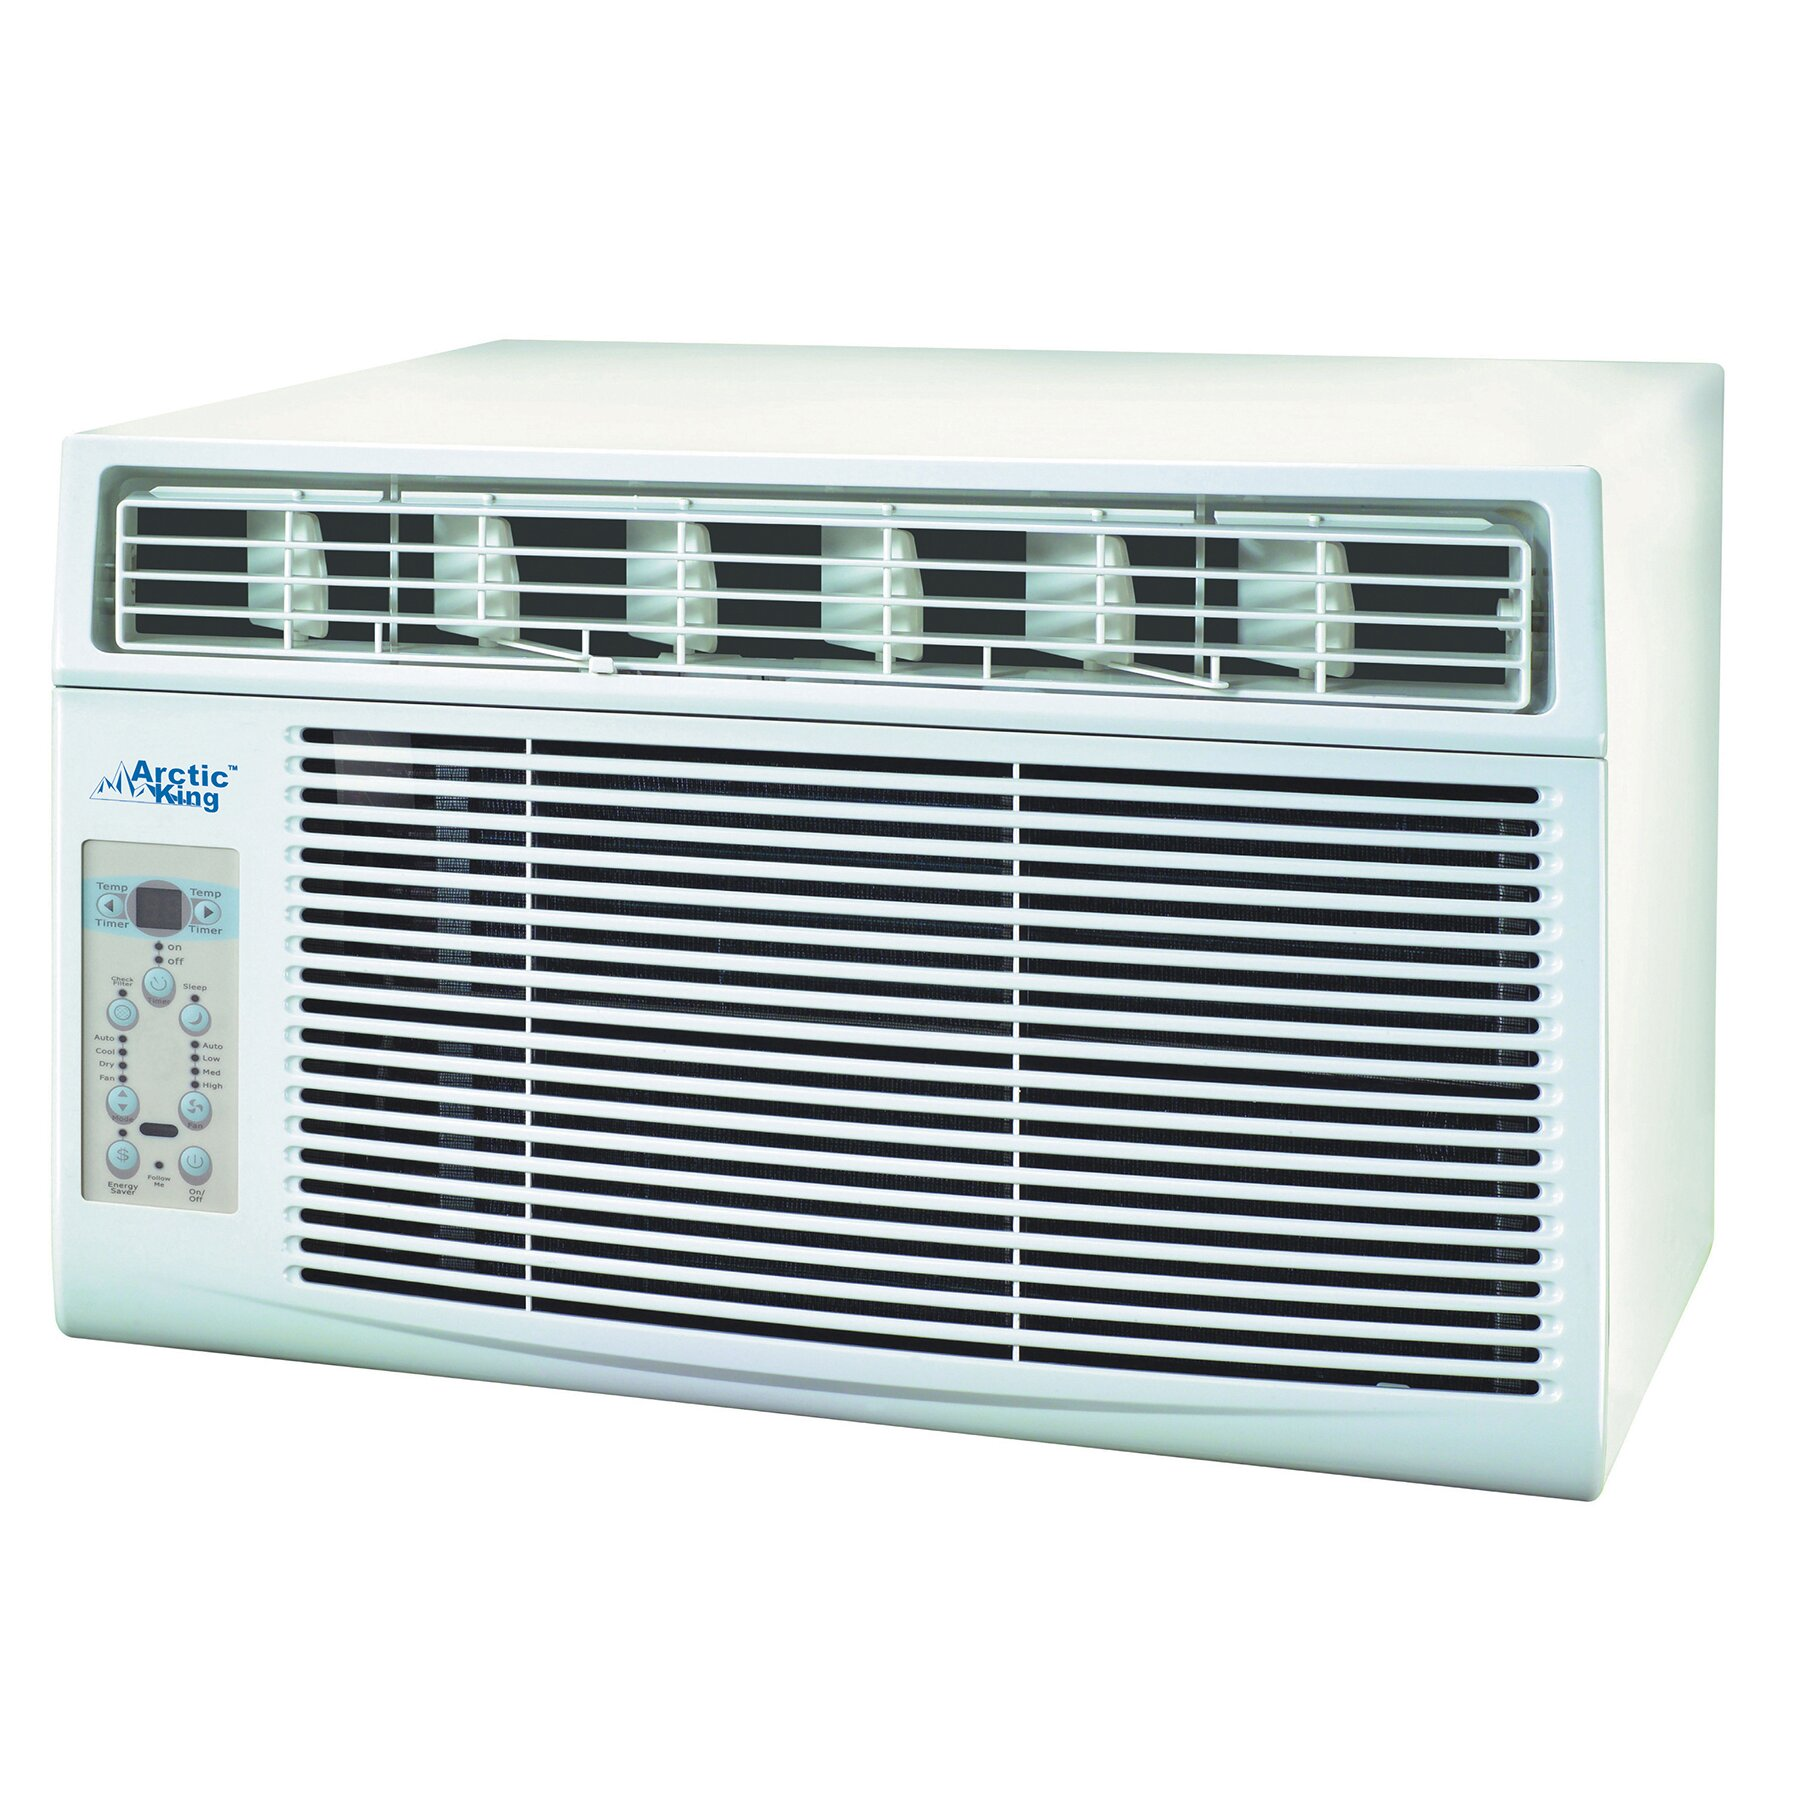 Arctic king 12 000 btu window air conditioner with remote for 12k btu window air conditioner